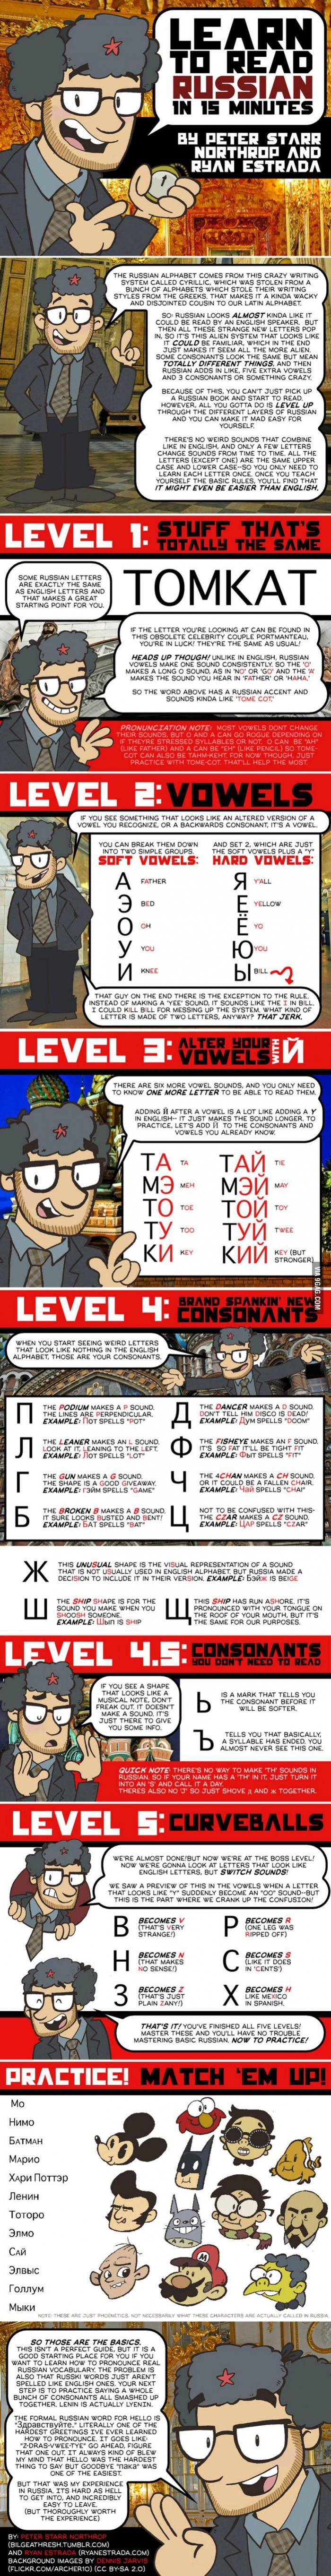 Learn To Read Russian In 15 minutes! - 9GAG